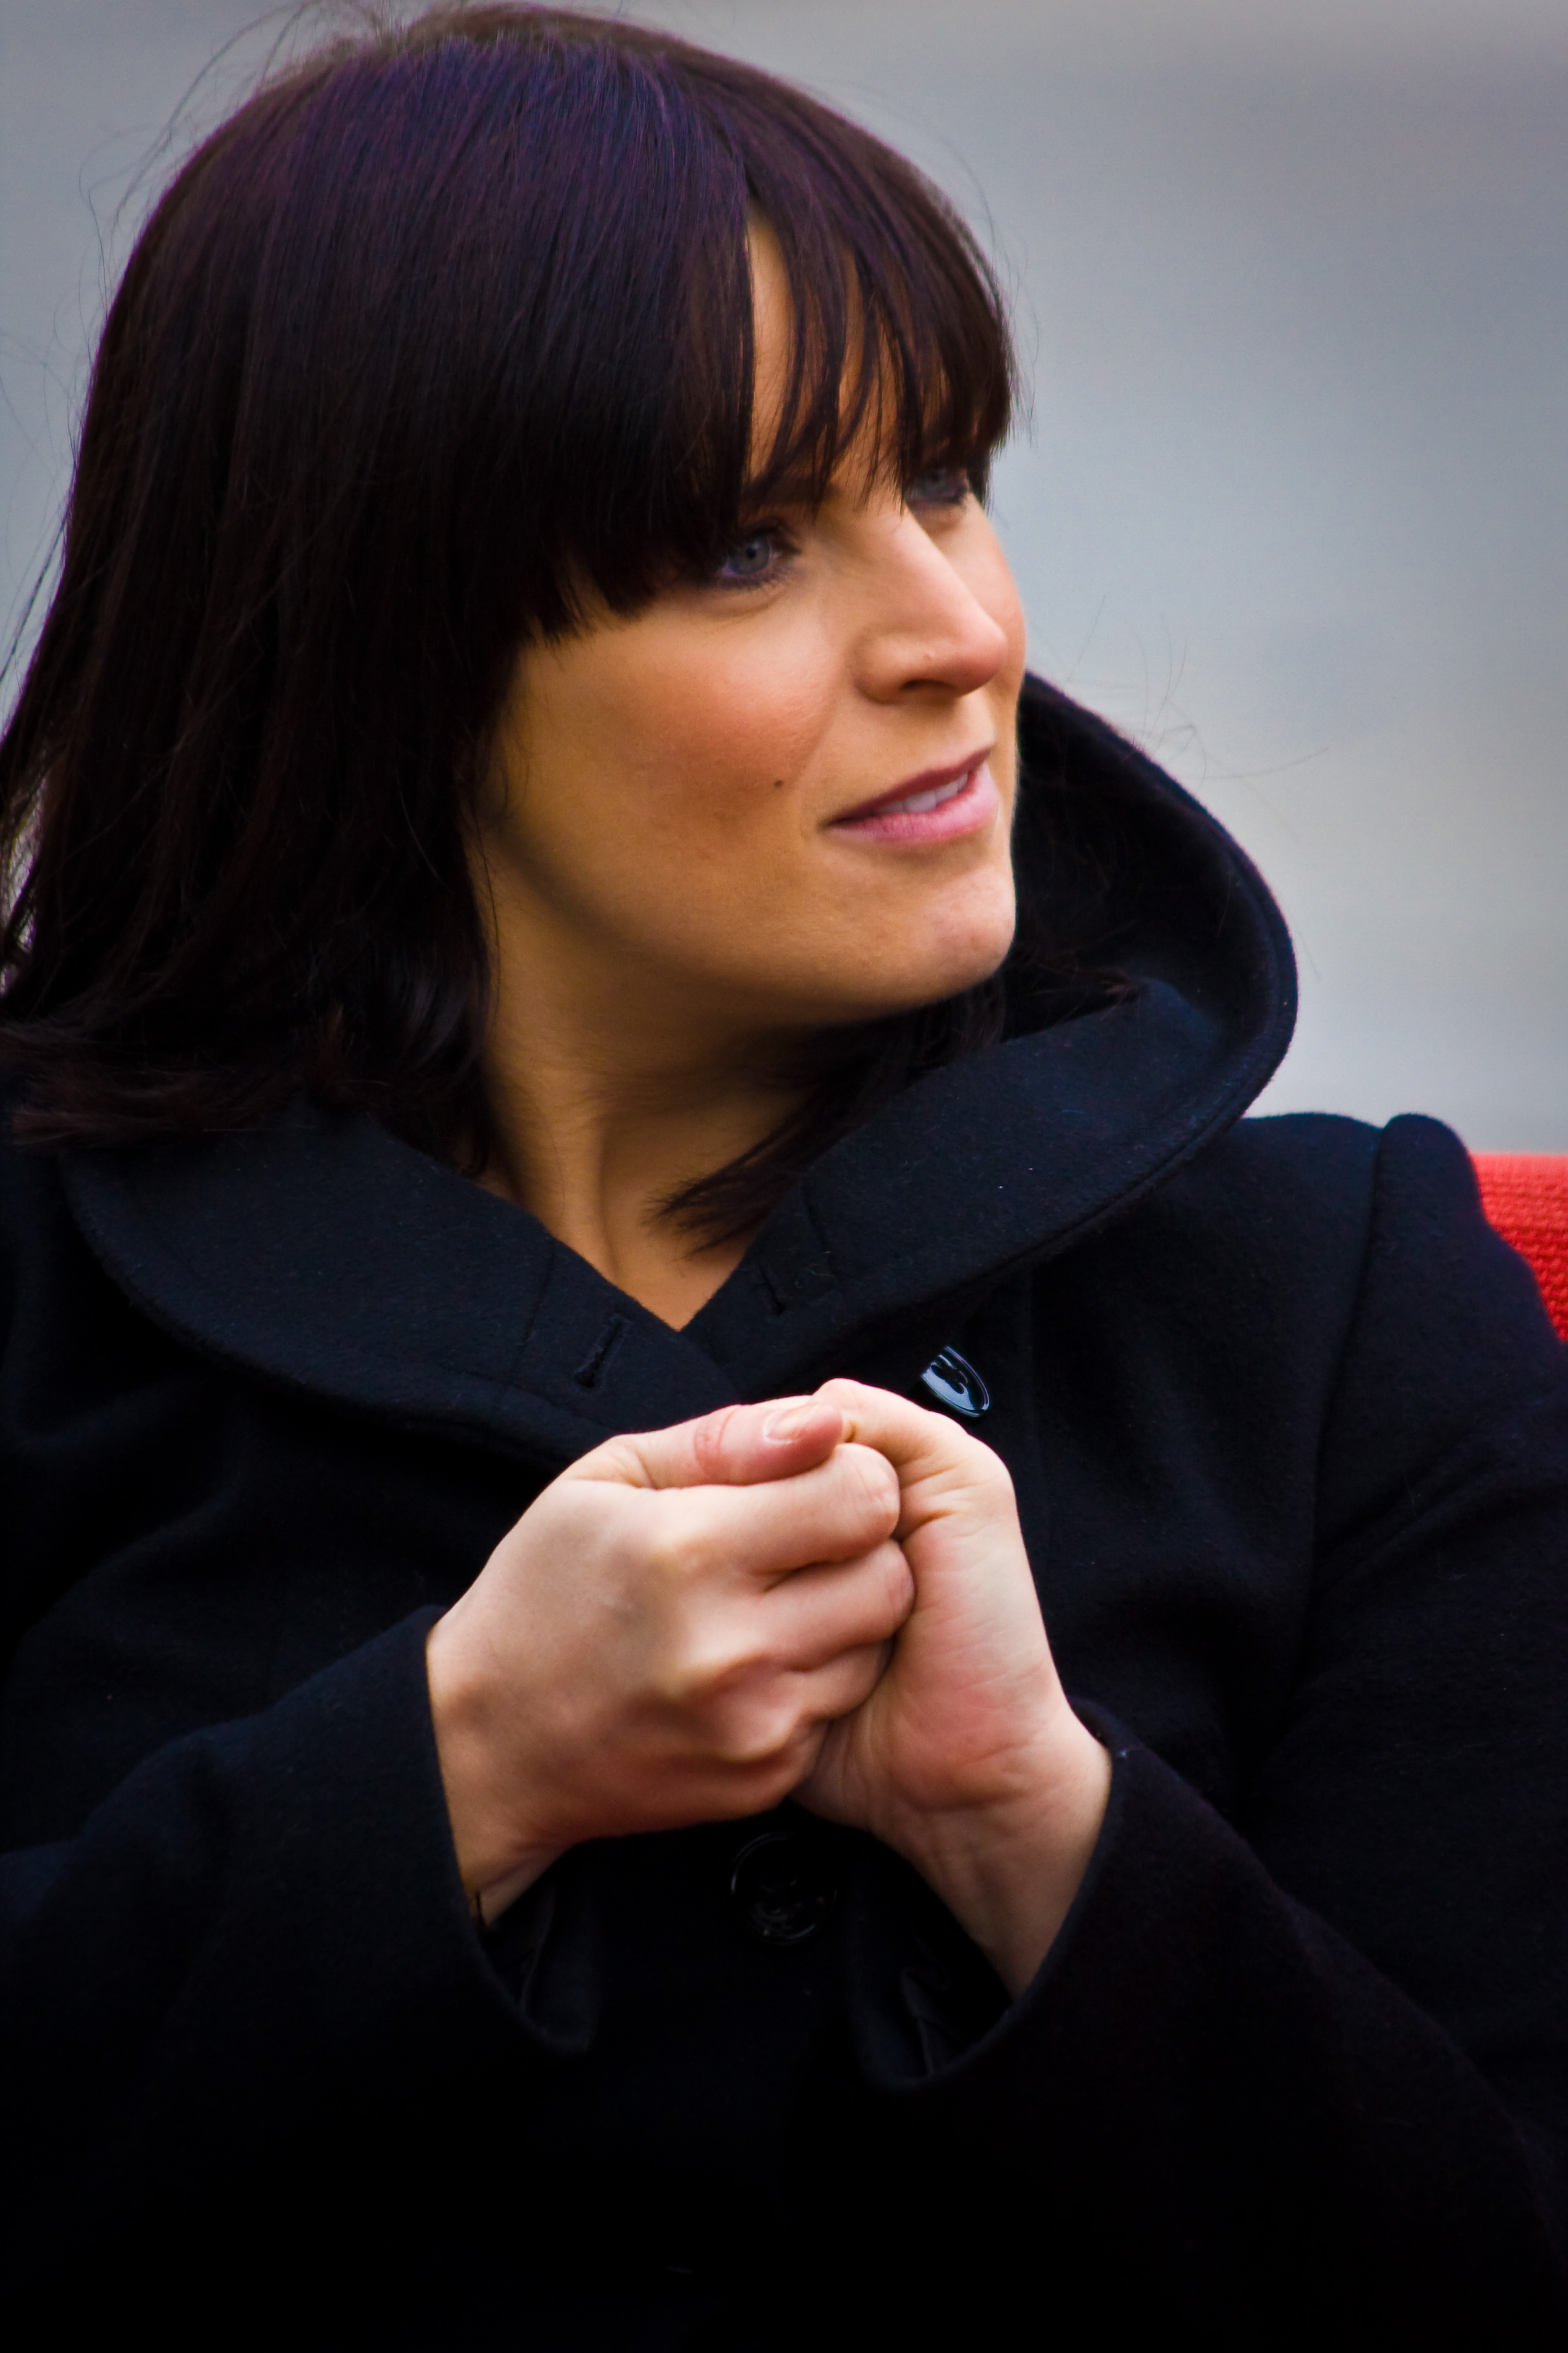 The 47-year old daughter of father (?) and mother(?) Anna Richardson in 2018 photo. Anna Richardson earned a  million dollar salary - leaving the net worth at 12 million in 2018